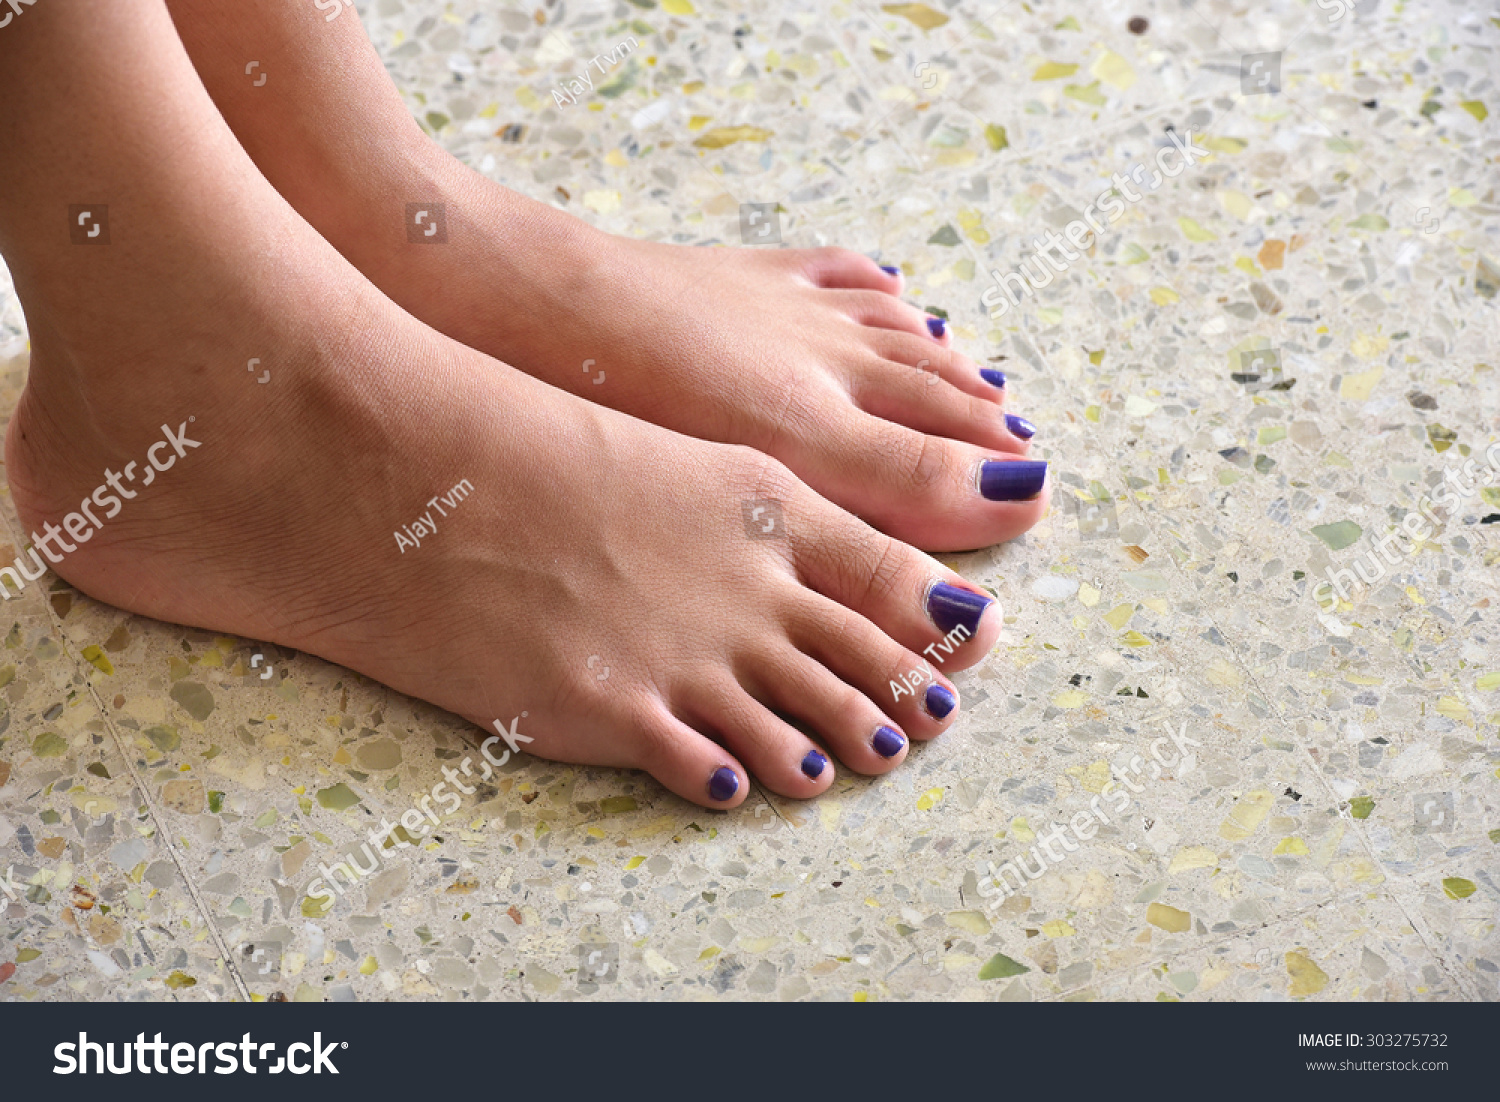 Looking Down Bare Feet Teenager Girl Stock Photo (Royalty Free ...